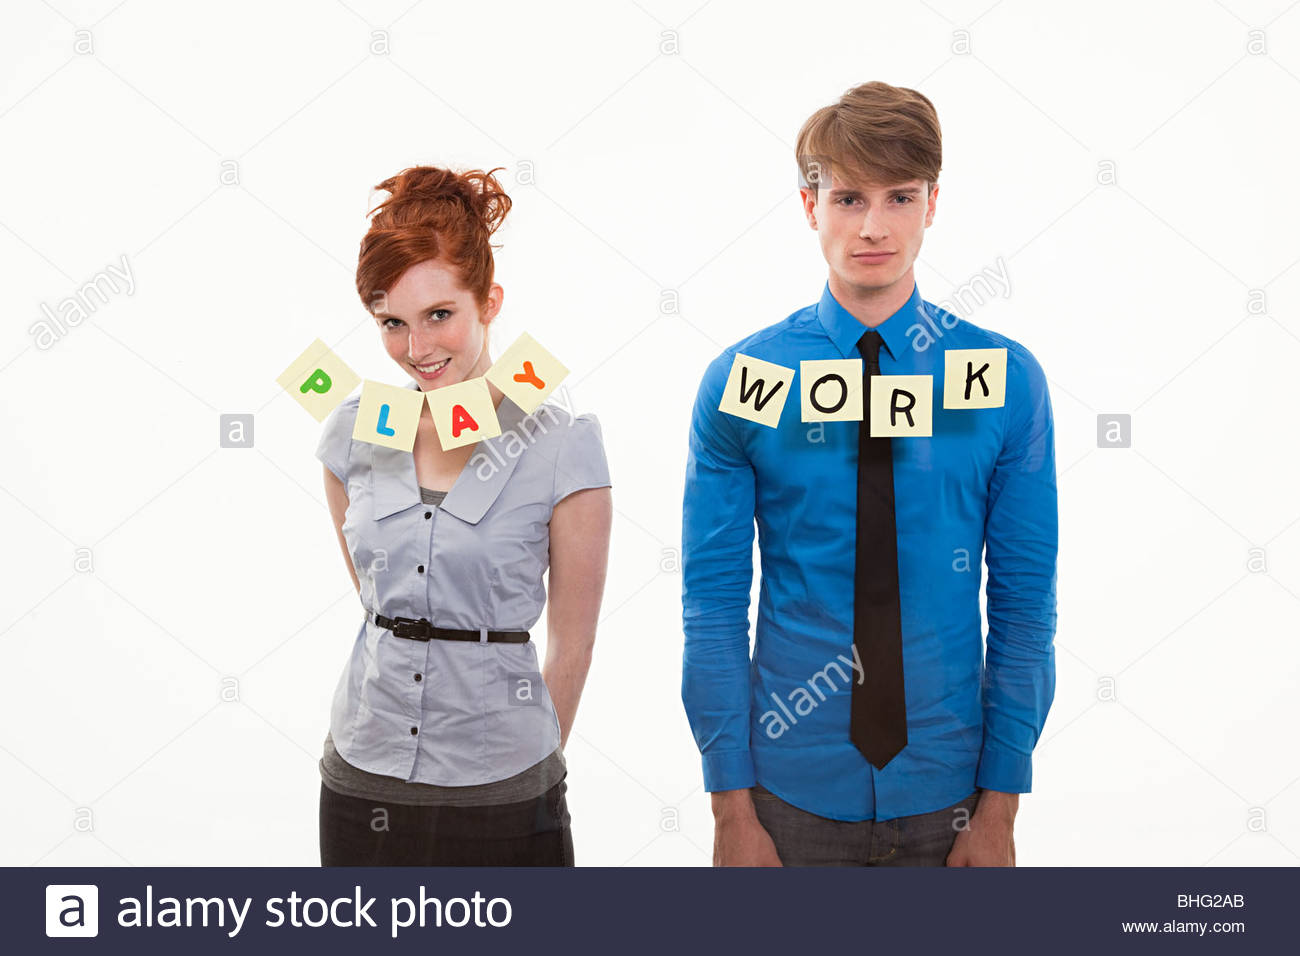 Couple with notes saying work and play - Stock Image